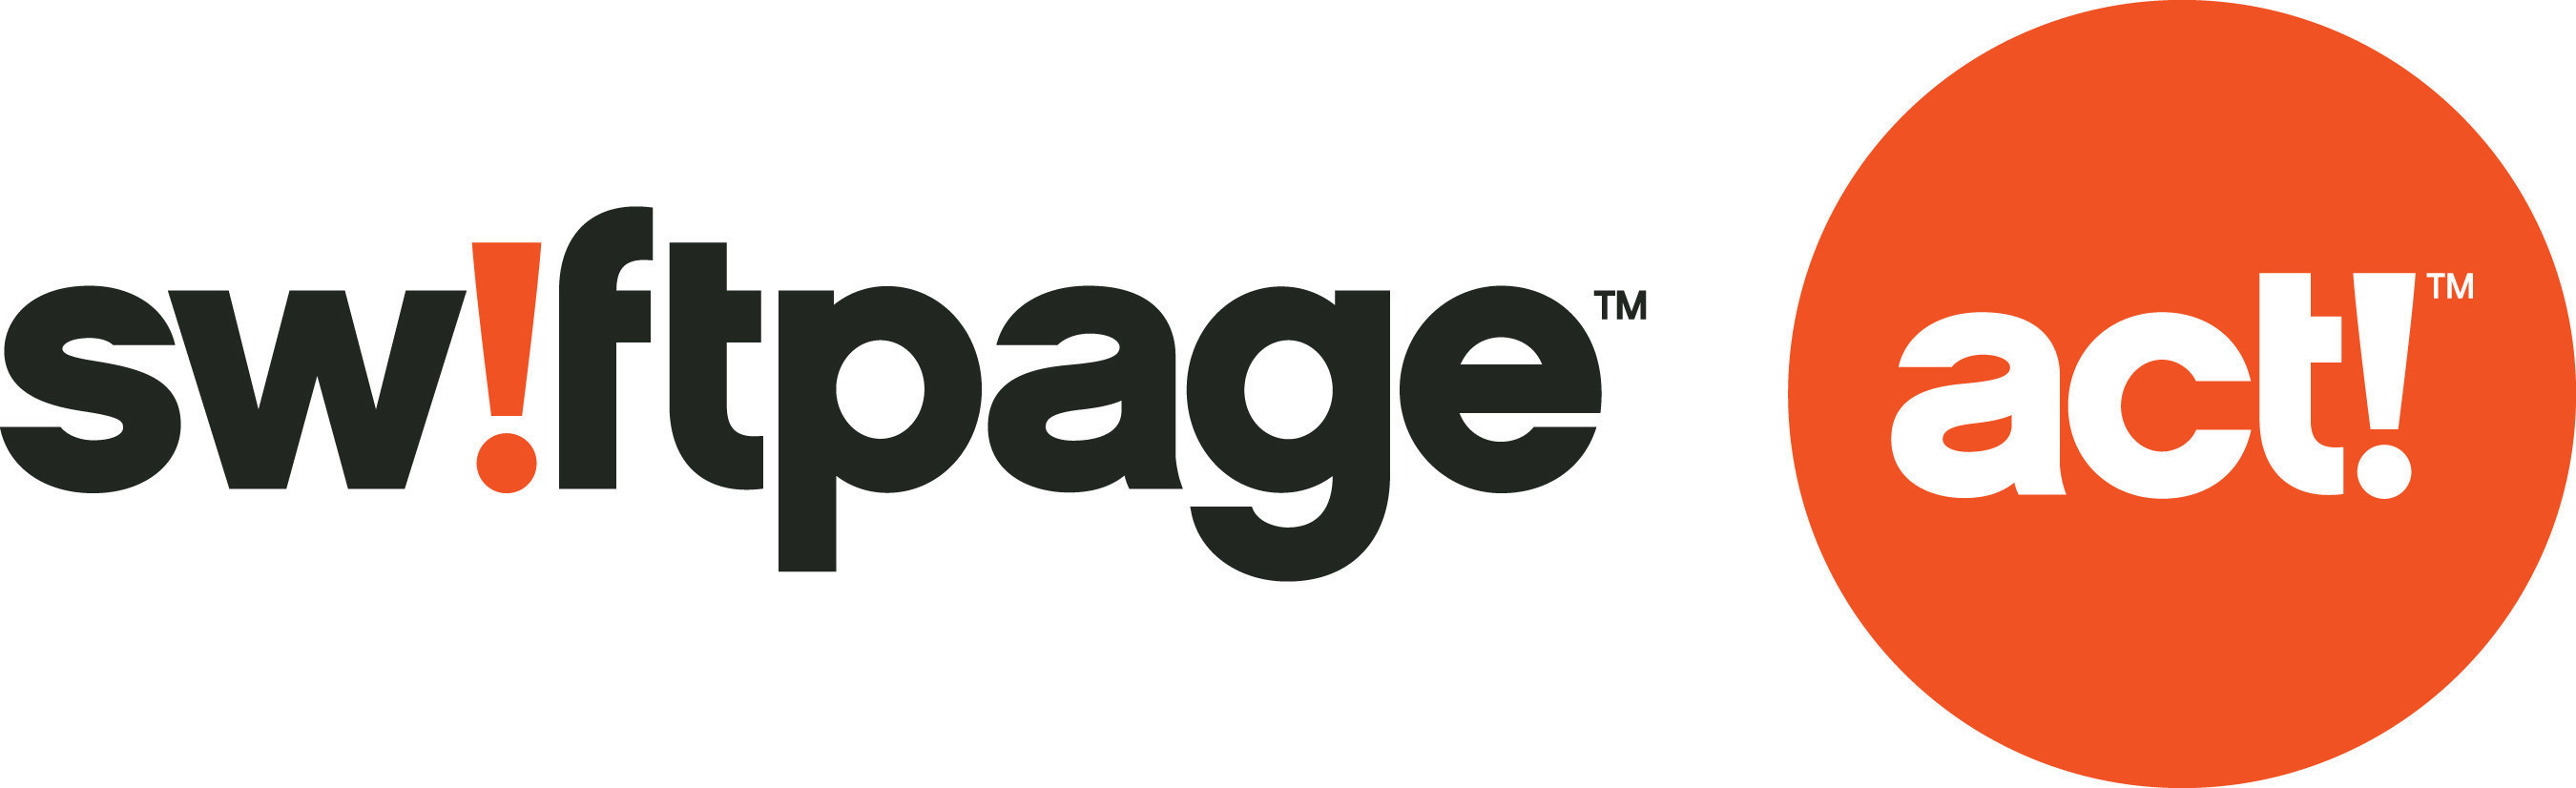 Swiftpage Launches All New Act! Subscription Plan